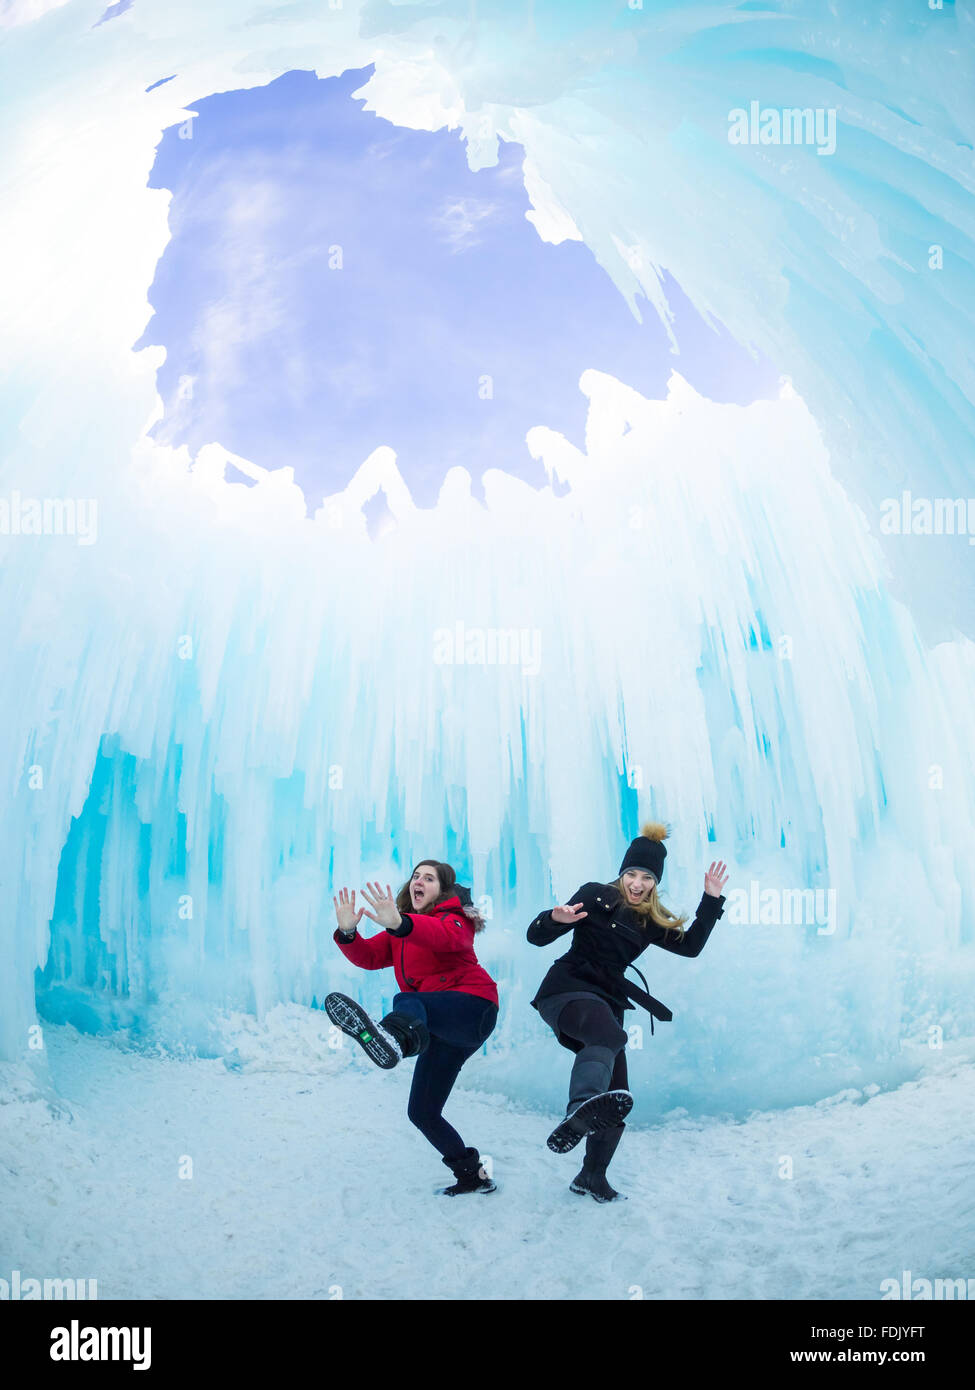 Two girls acting silly under the Dome Room at the Ice Castle in Hawrelak Park, Edmonton, Alberta, Canada. - Stock Image